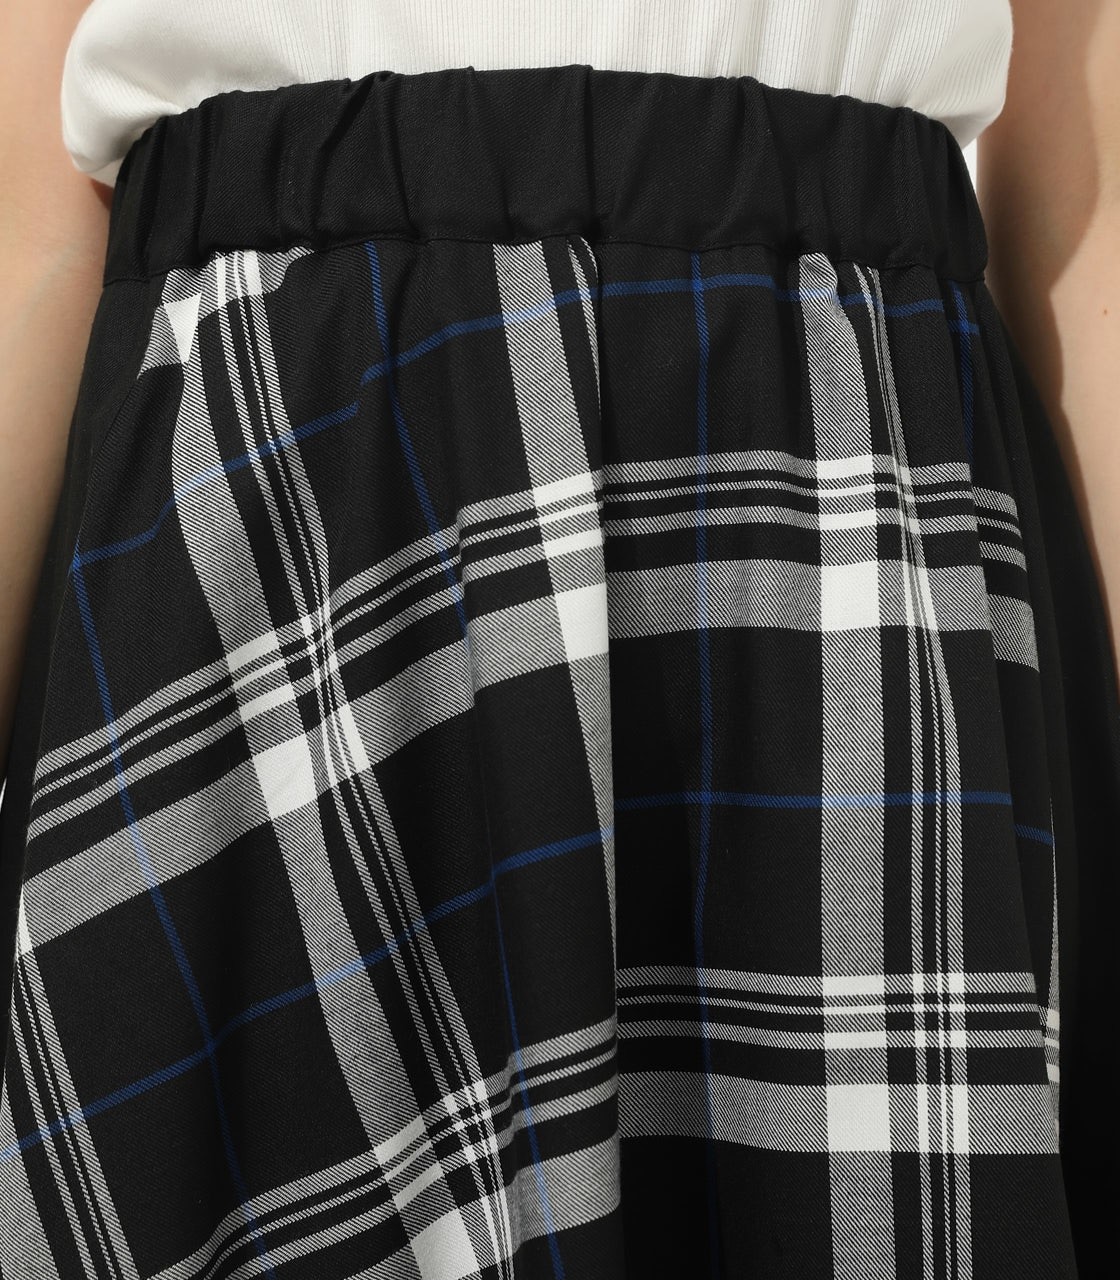 【AZUL BY MOUSSY】CHECK ASYMMETRY PATTERN SKIRT 詳細画像 柄BLK 7